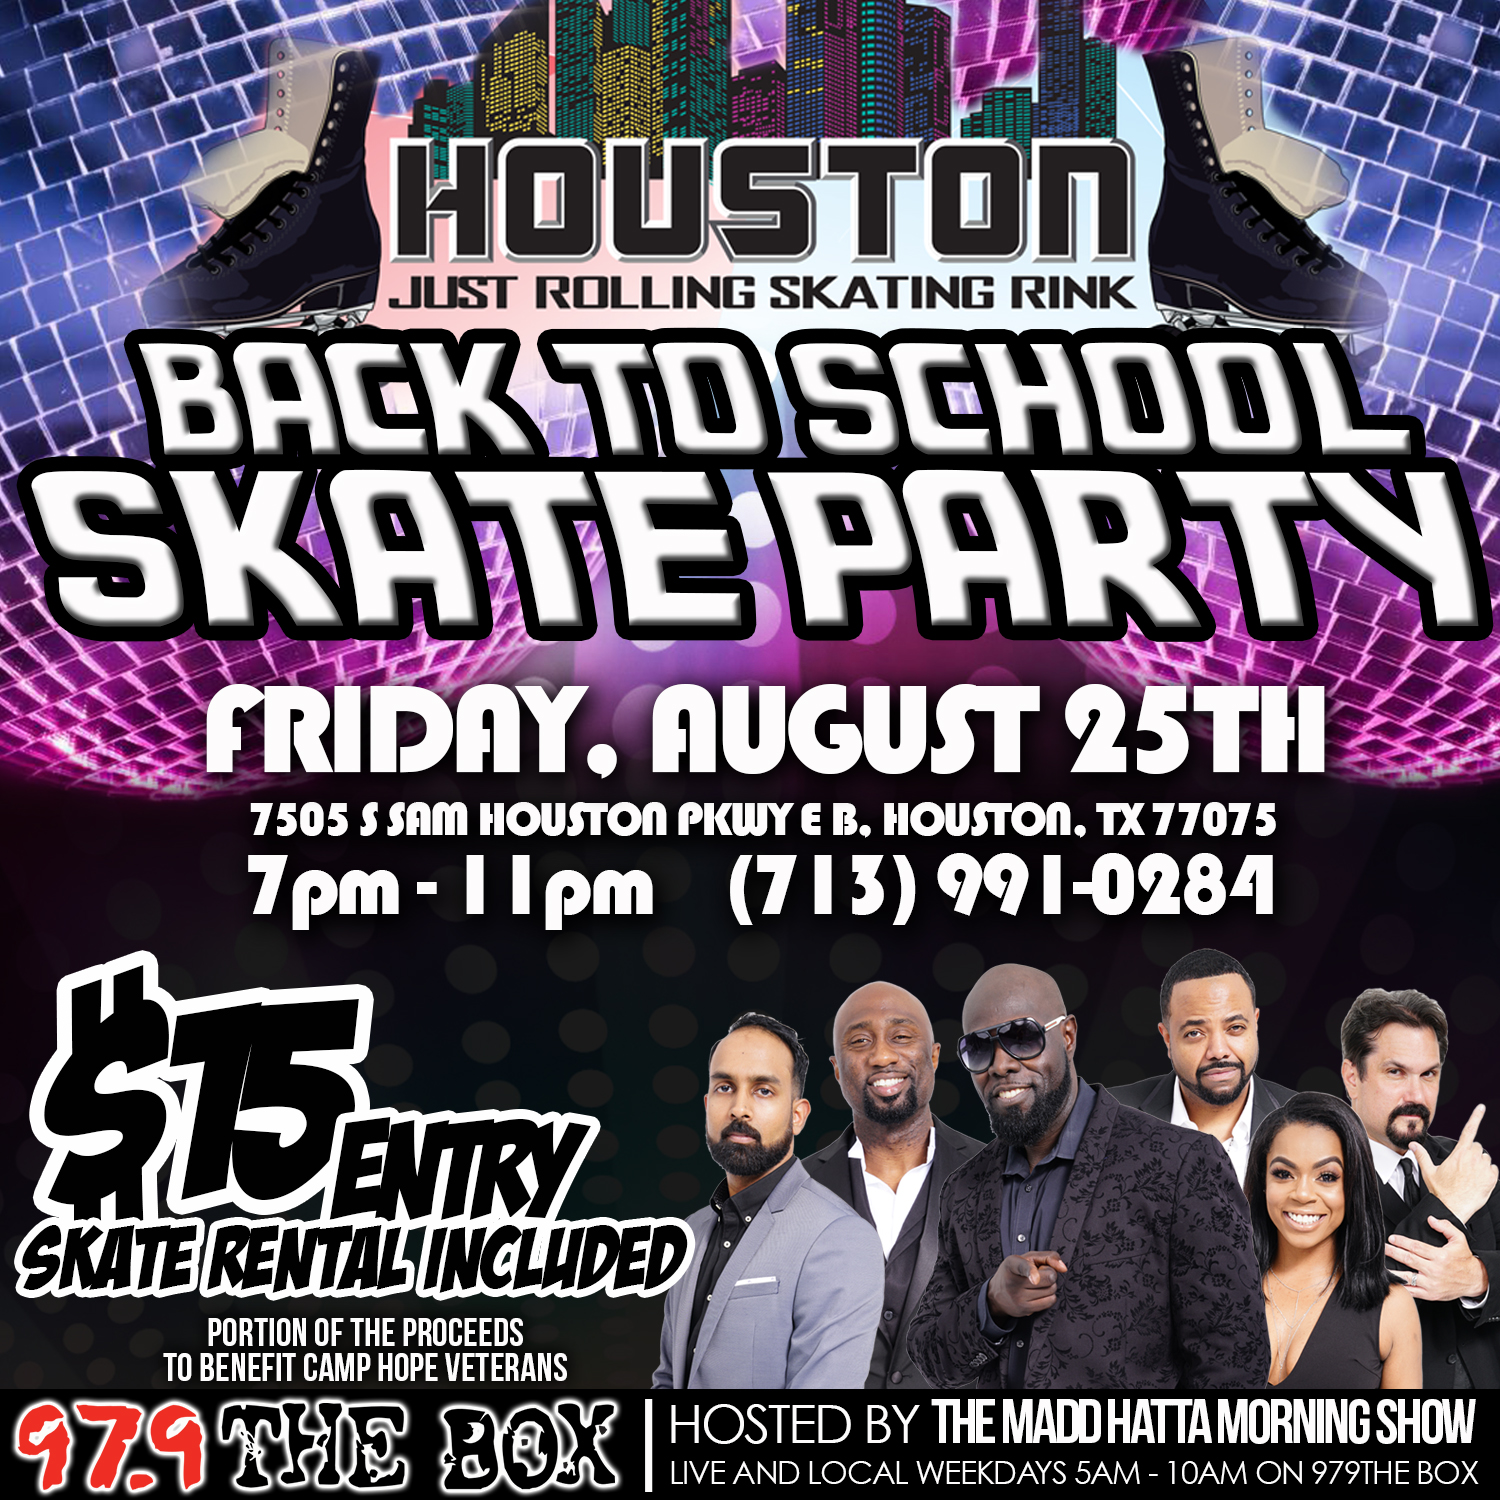 Skate Party graphic